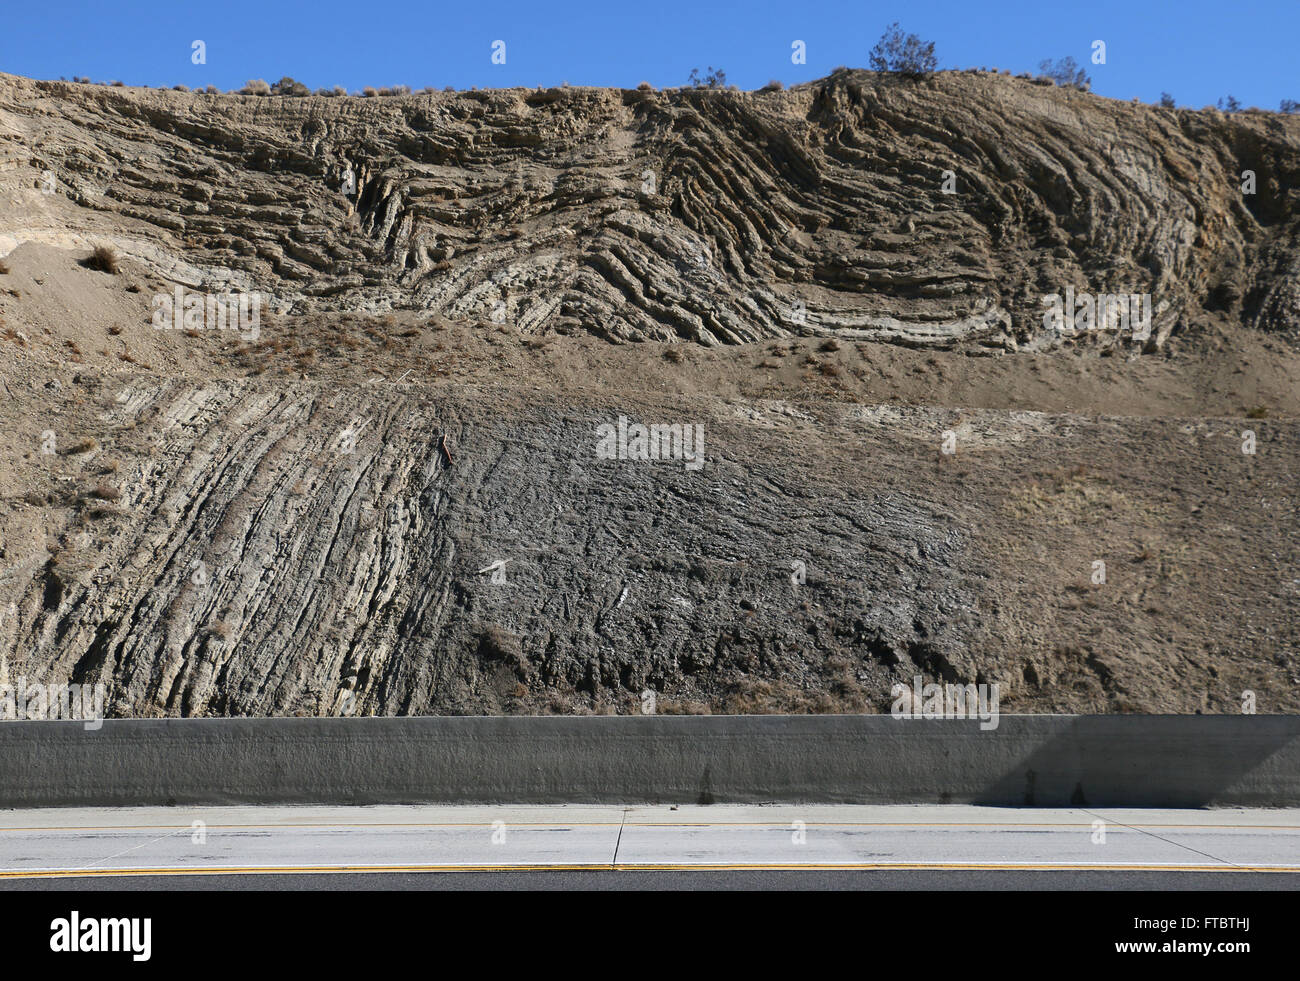 Deformed Rock Layers In Road Cut Along San Andres Fault